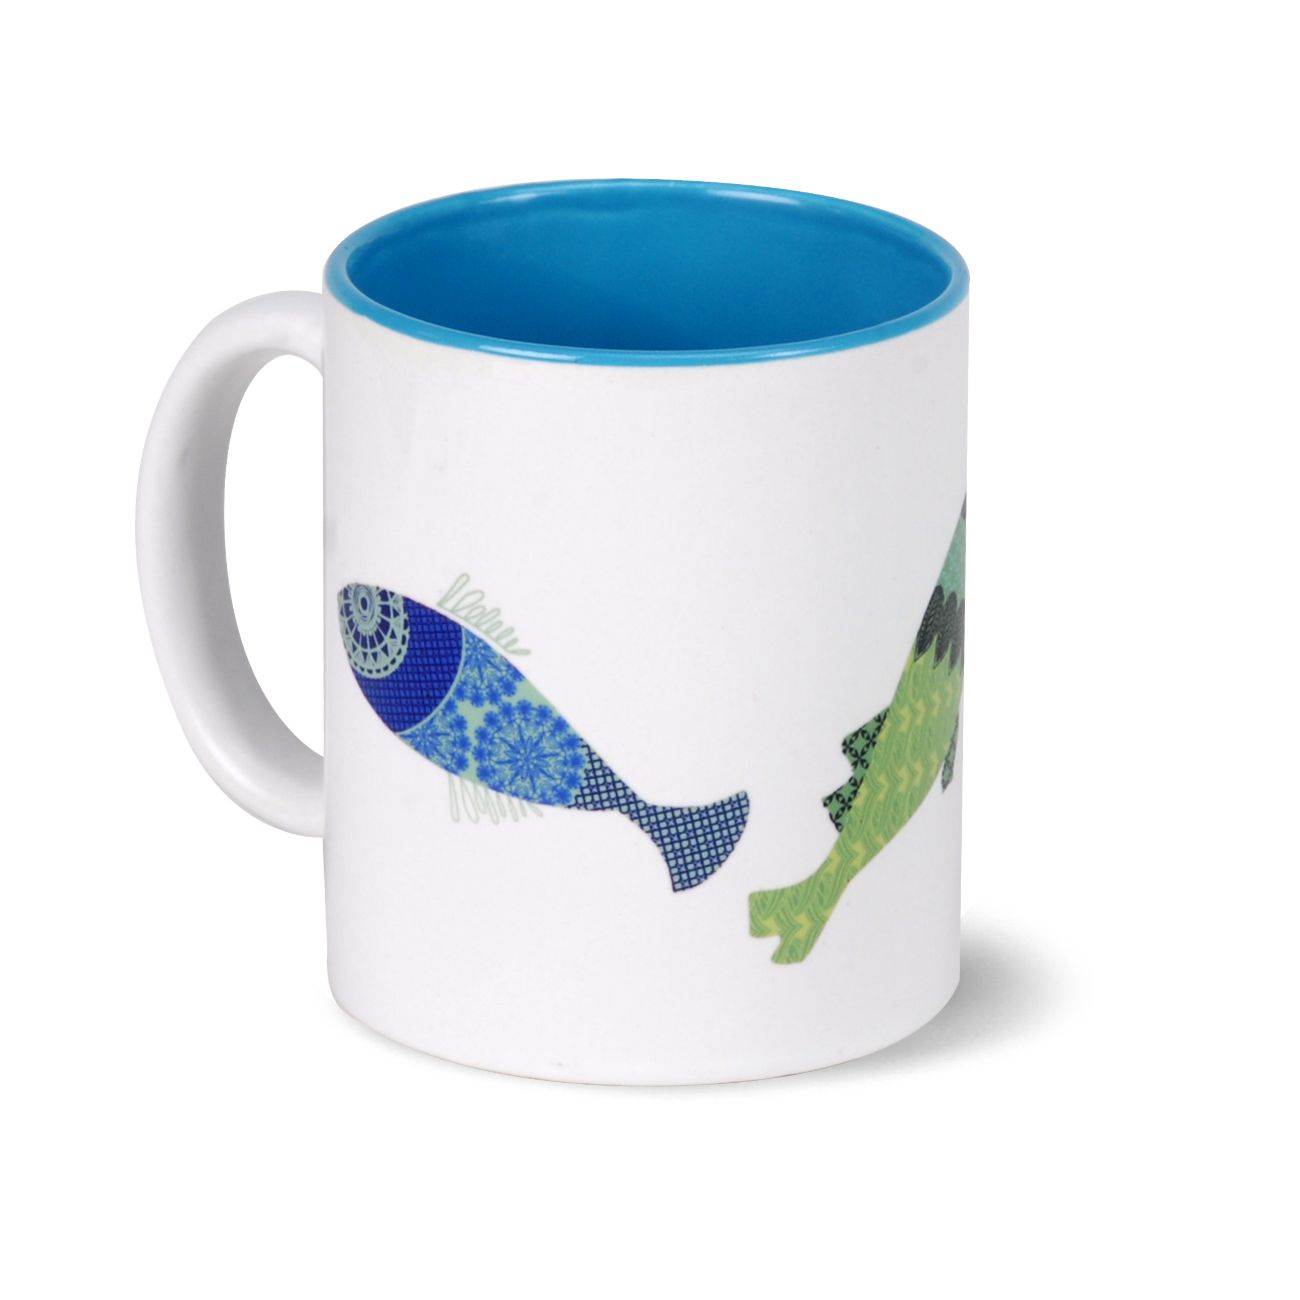 Kuheli Colourful Fish Coffee Mug Buy Kuheli Colourful Fish Coffee Mug On Best Price Online